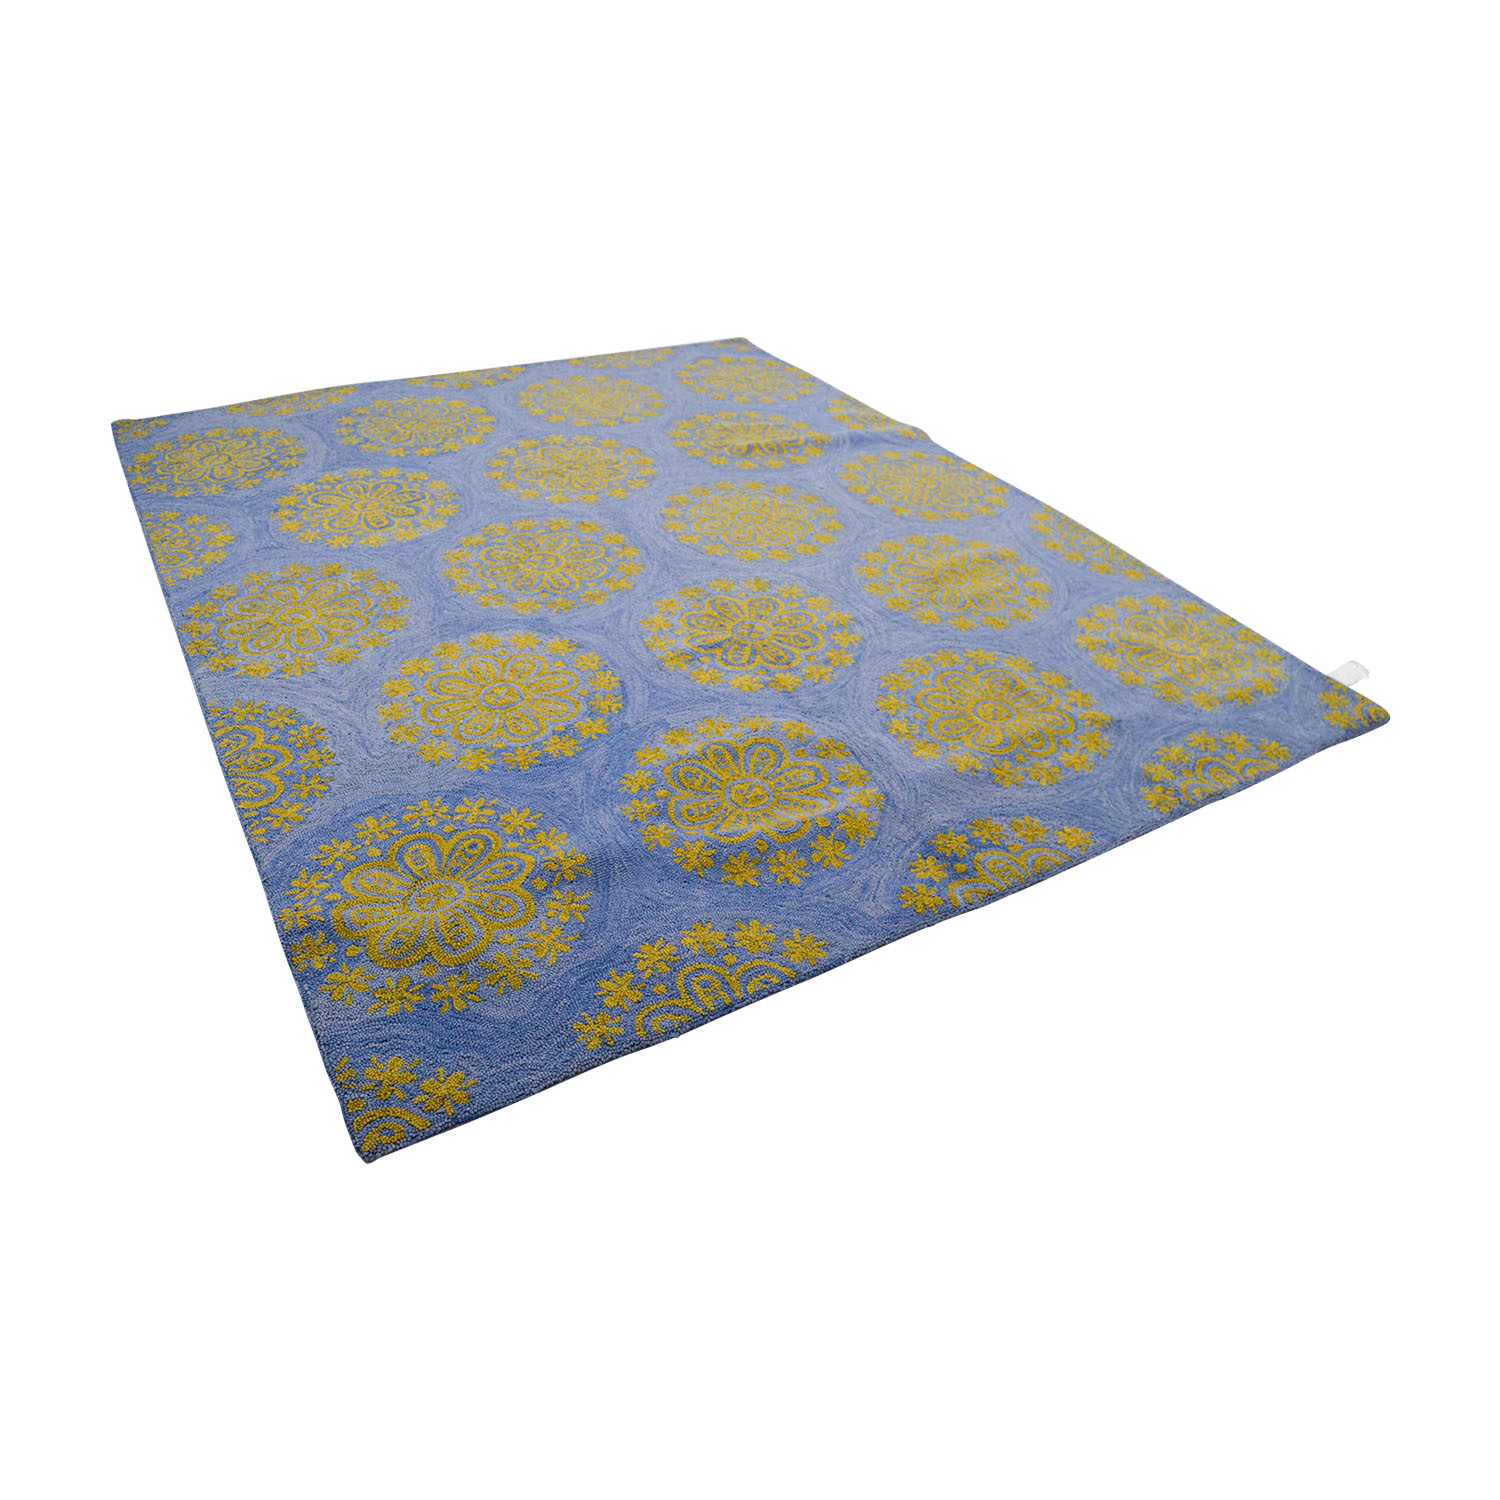 Obeetee Obeetee Hand Hooked Blue and Yellow Medallion Rug dimensions